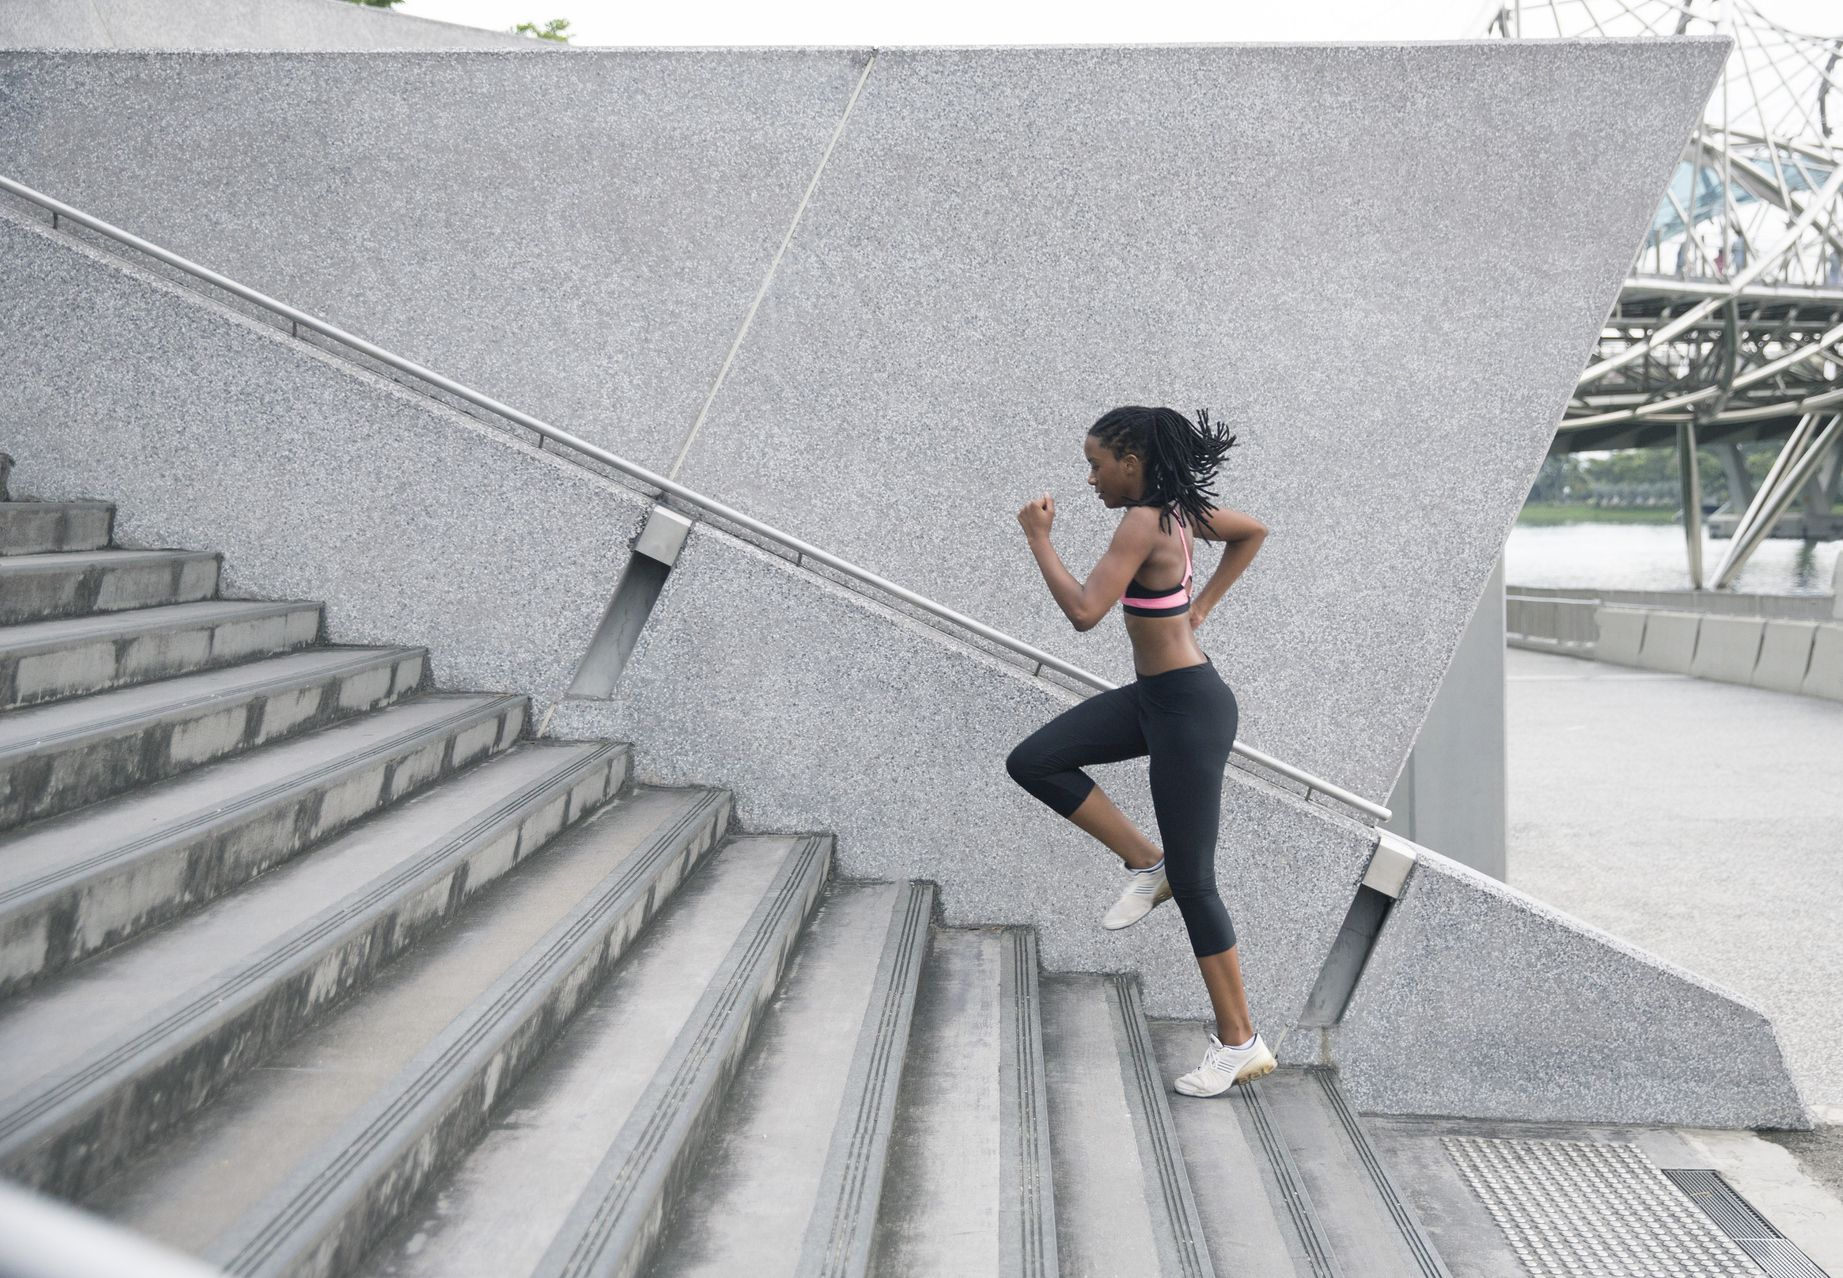 11 Calorie-Burning Exercises That Will Keep You Fit All Winter